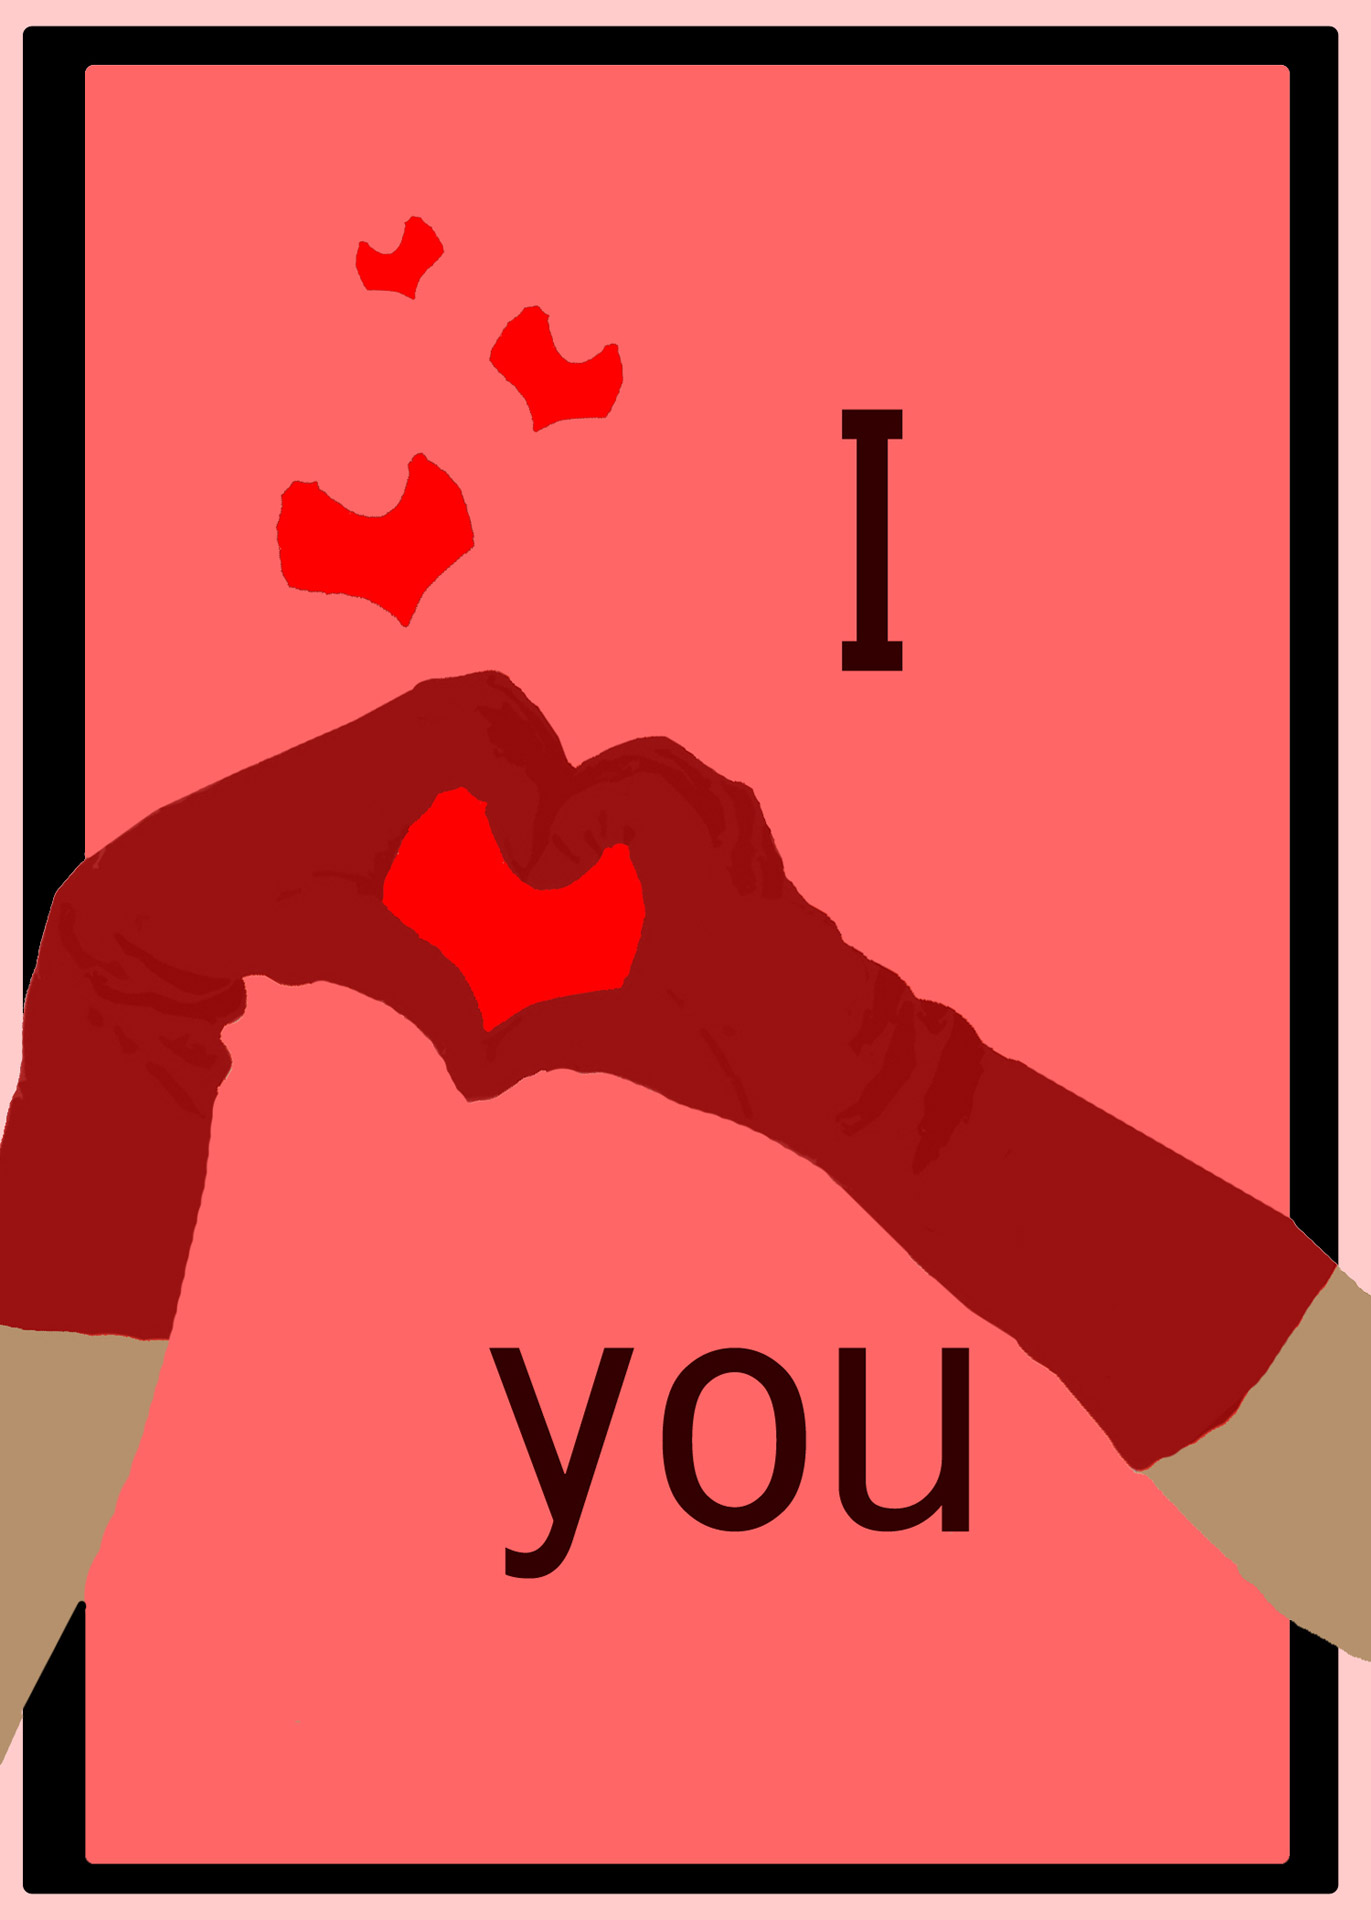 I Love You Valentine Free Stock Photo Public Domain Pictures